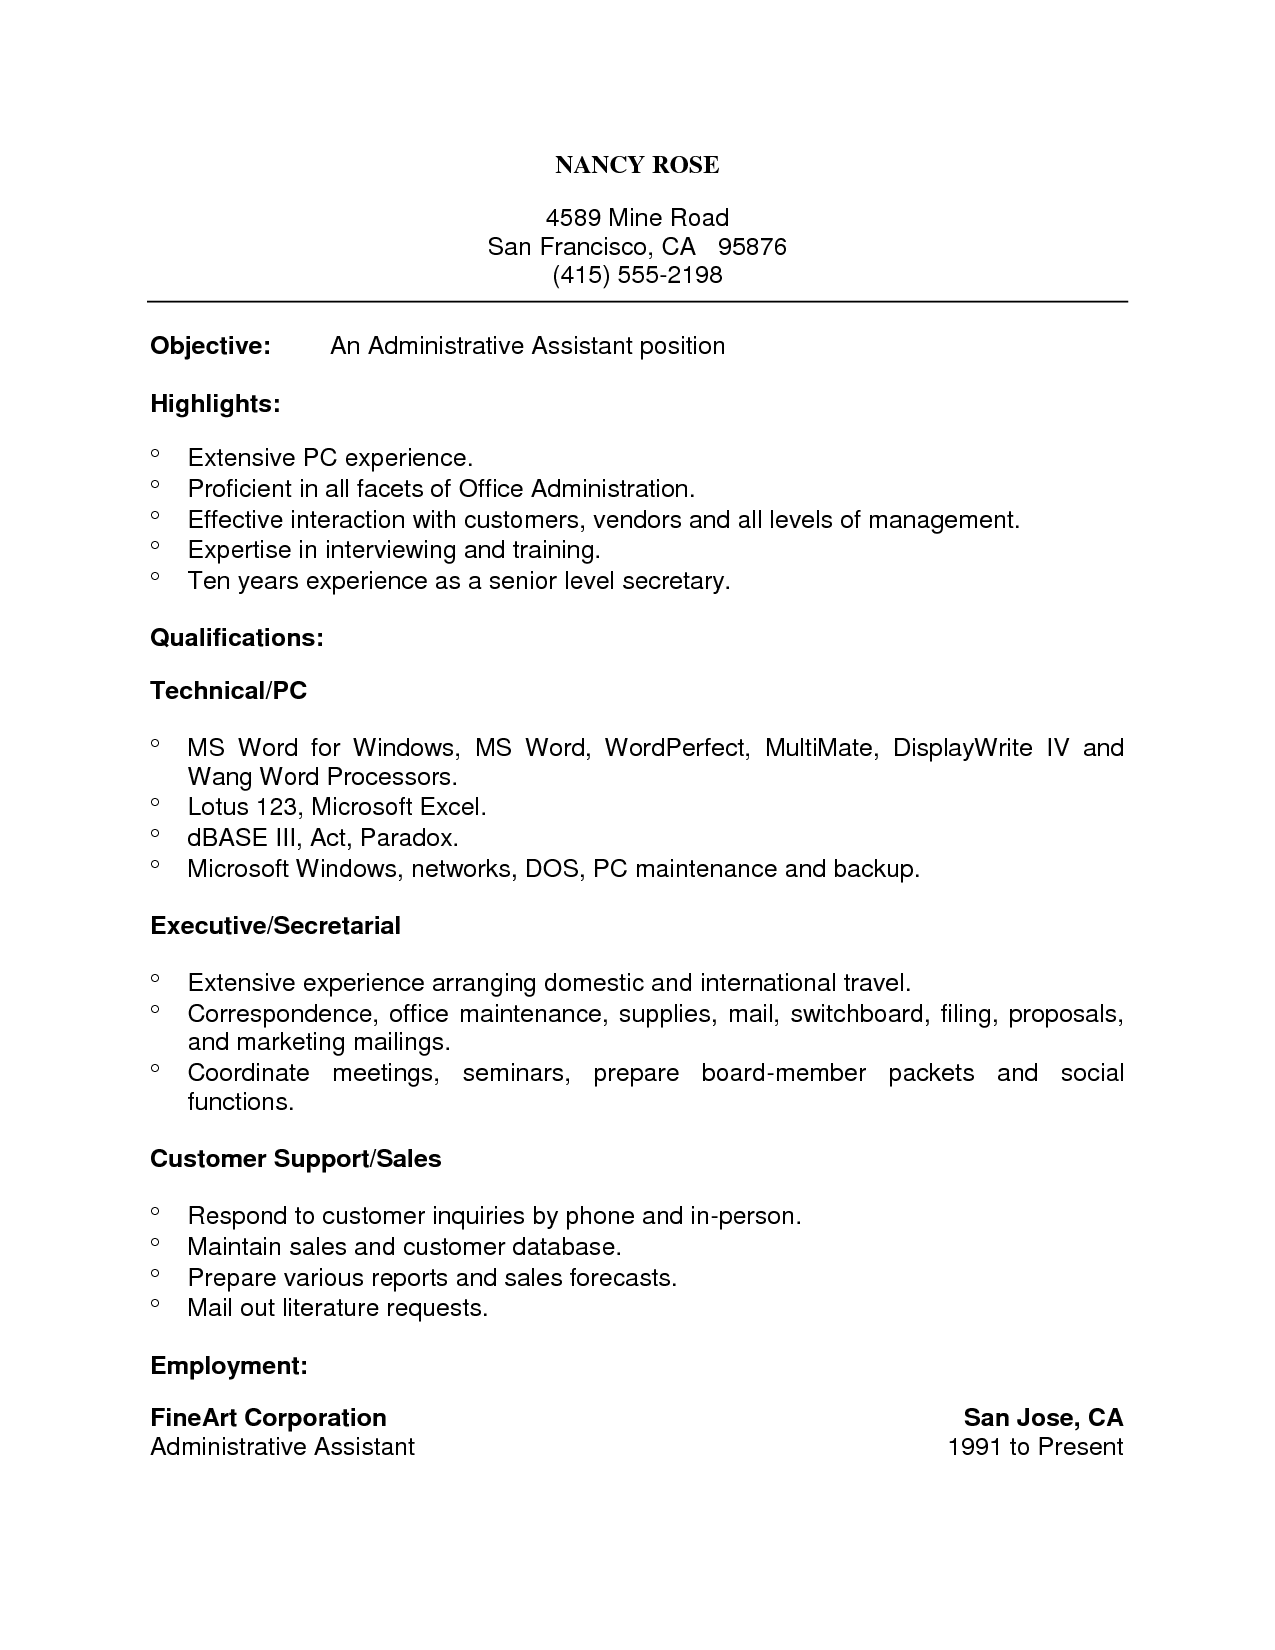 Healthcare Administration Cover Letter New Cover Letter Exles Healthcare Administration Registered Cover Letter .